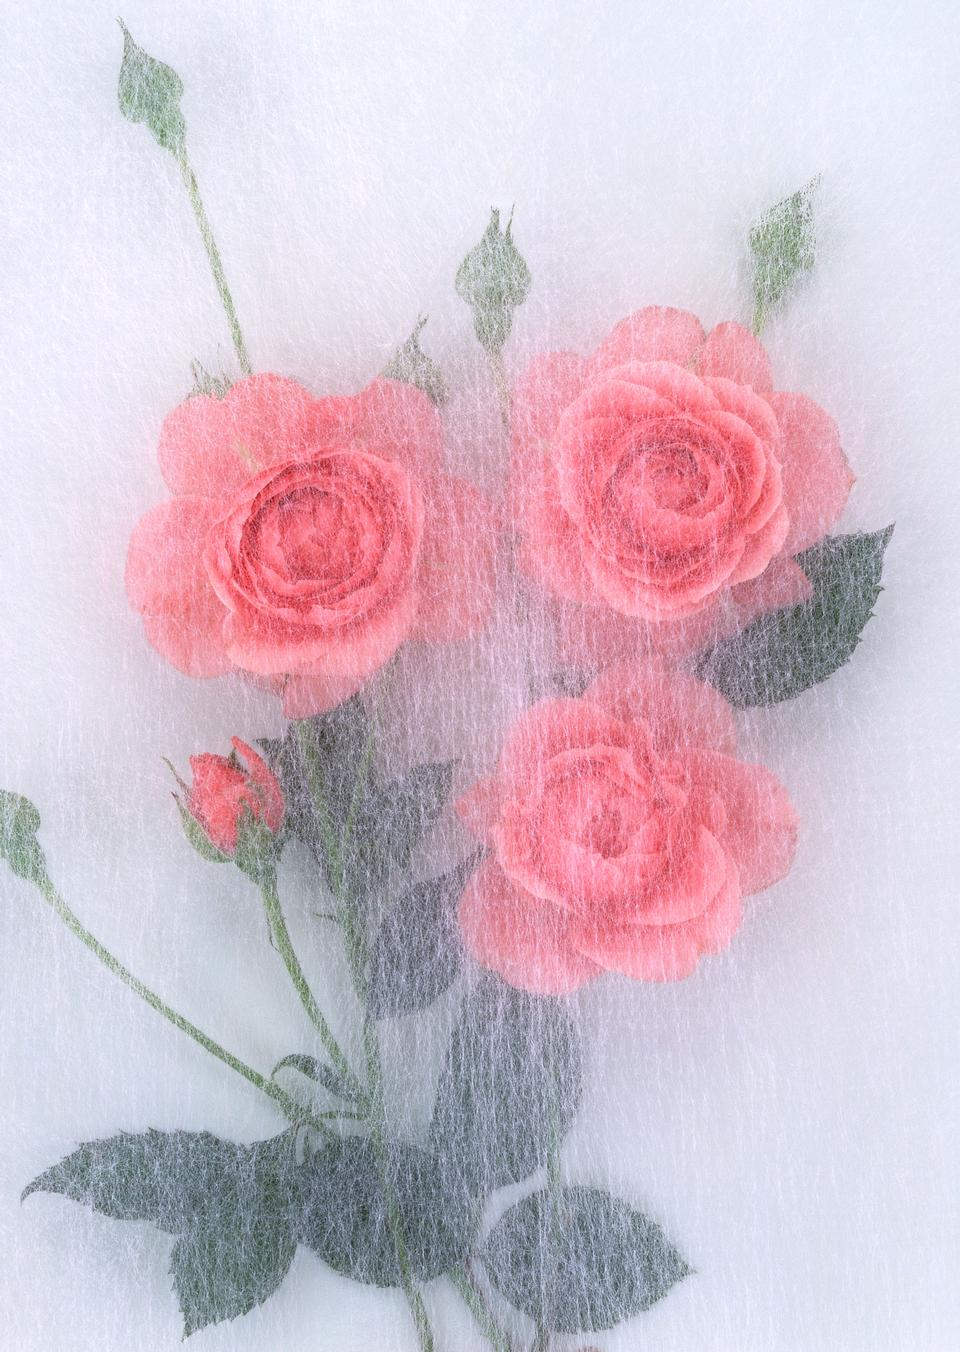 Abstract rose in transparent throw paper